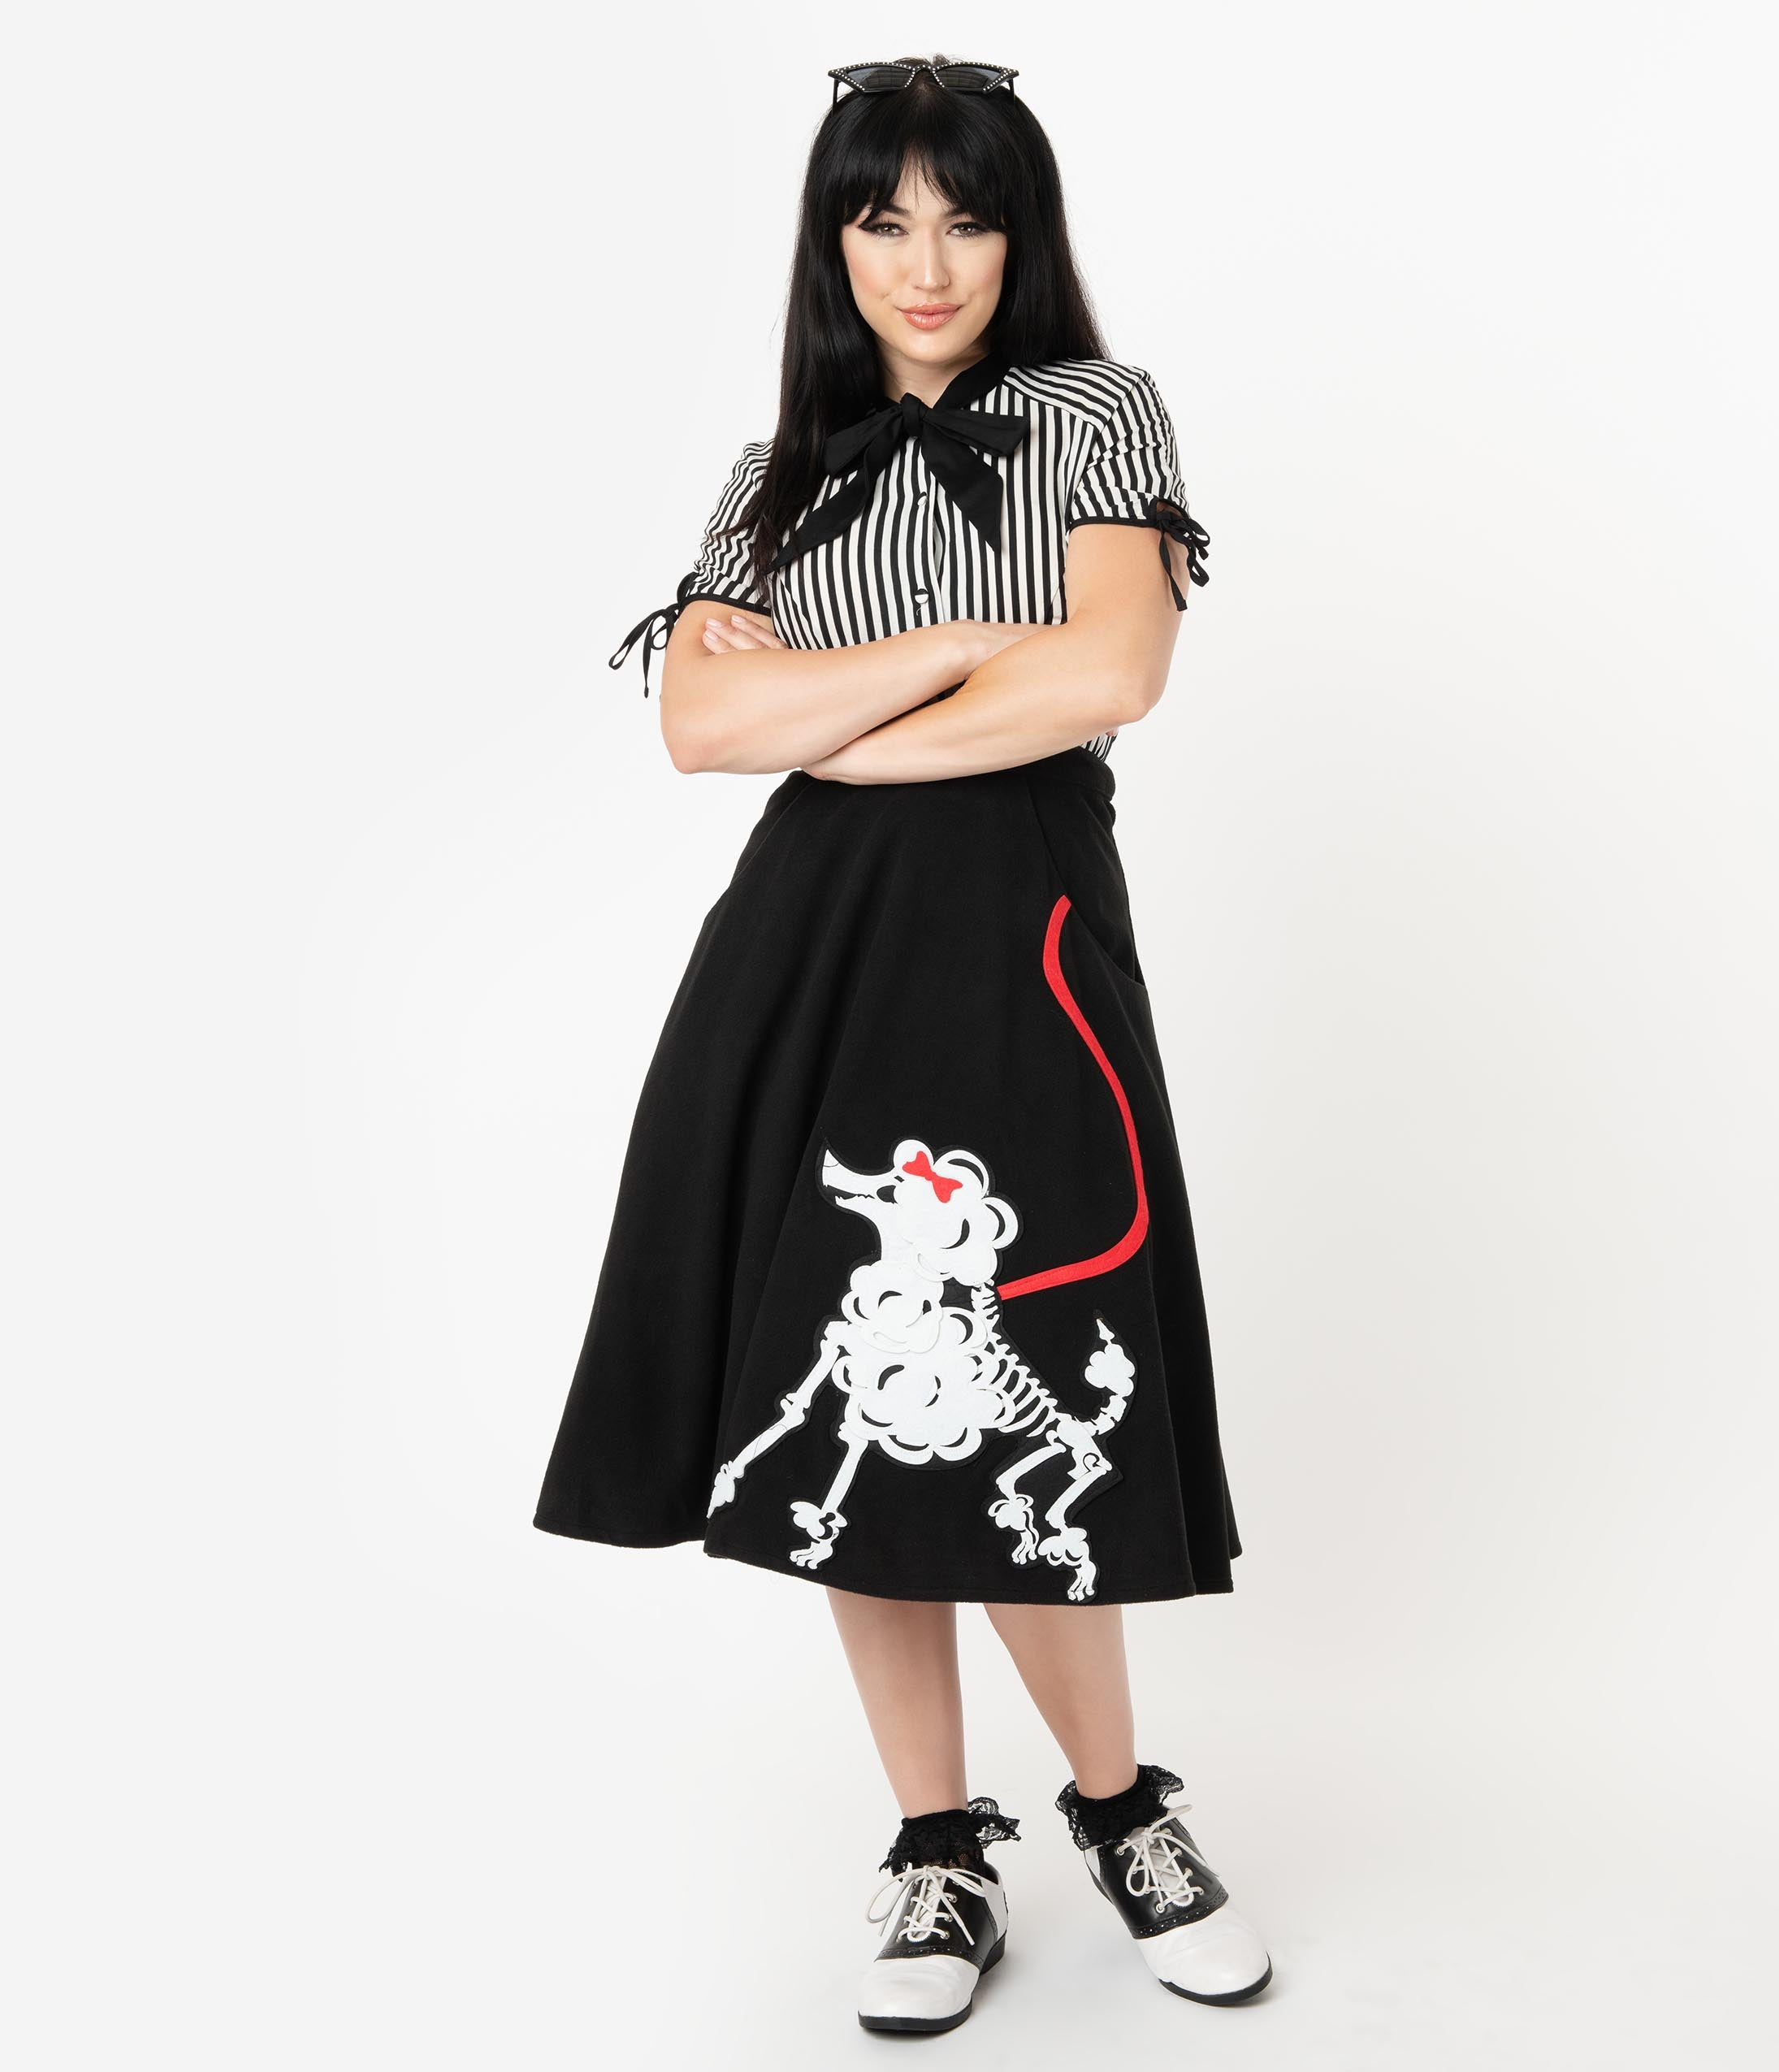 Vintage Retro Halloween Themed Clothing Unique Vintage 1950S Black Soda Shop Skeleton Poodle Swing Skirt $68.00 AT vintagedancer.com